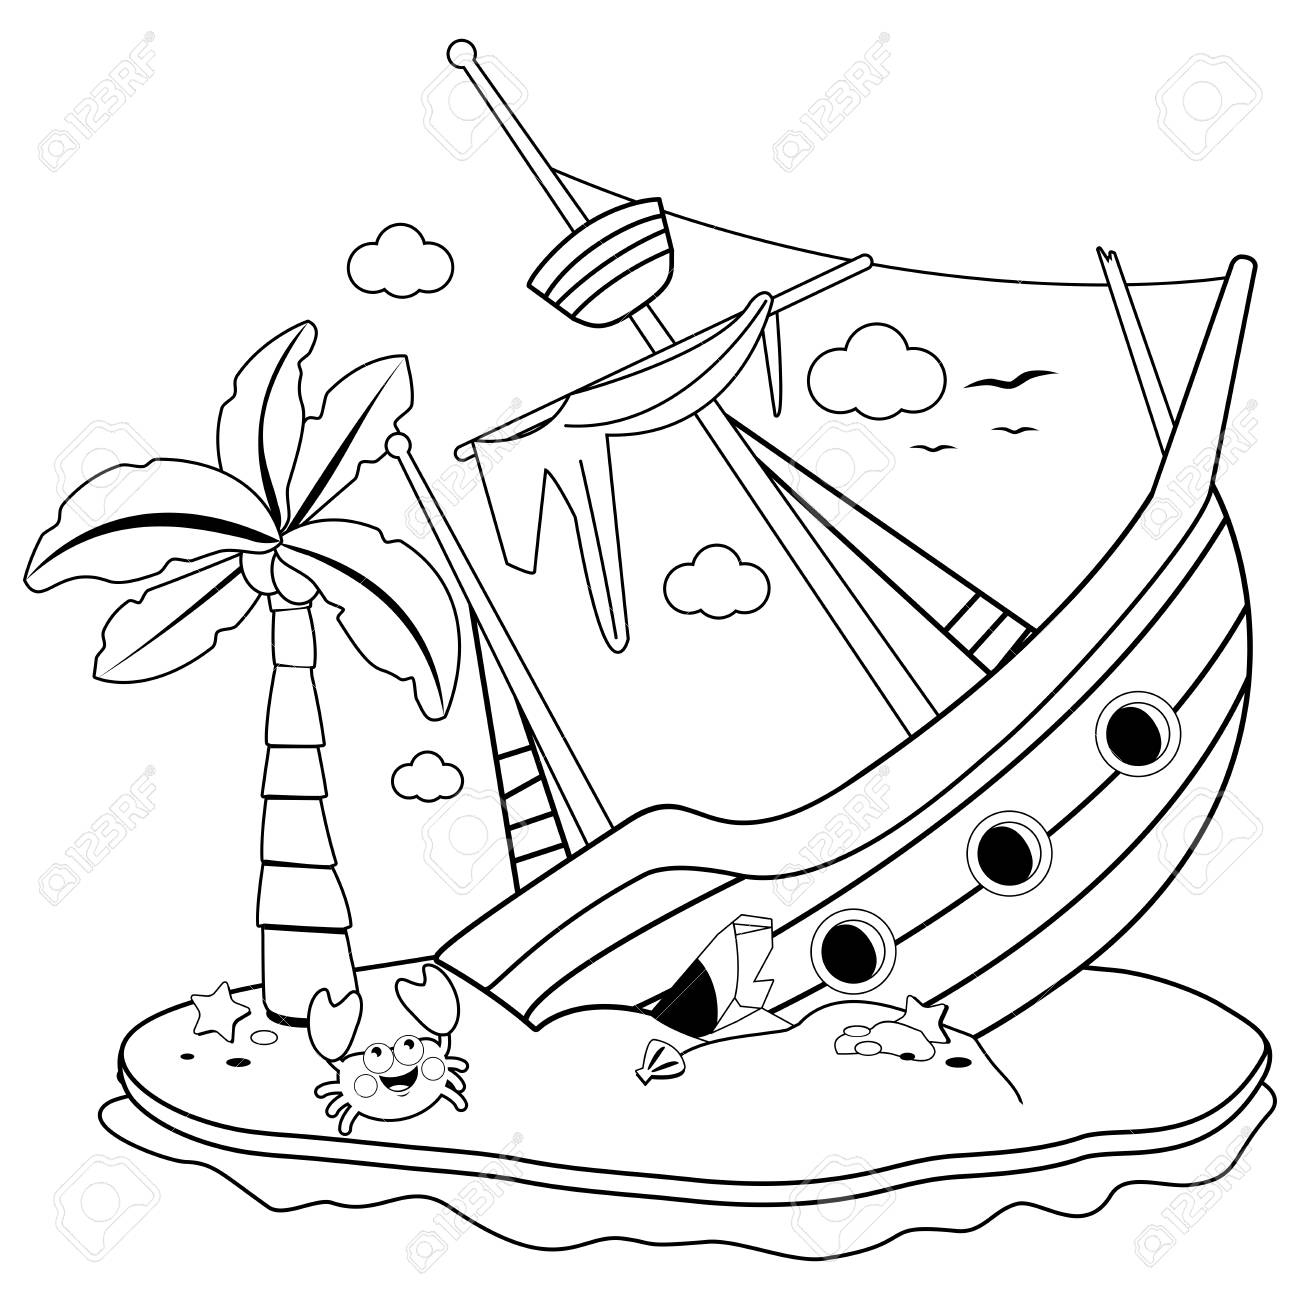 Shipwreck on an island. Black and white coloring book page.